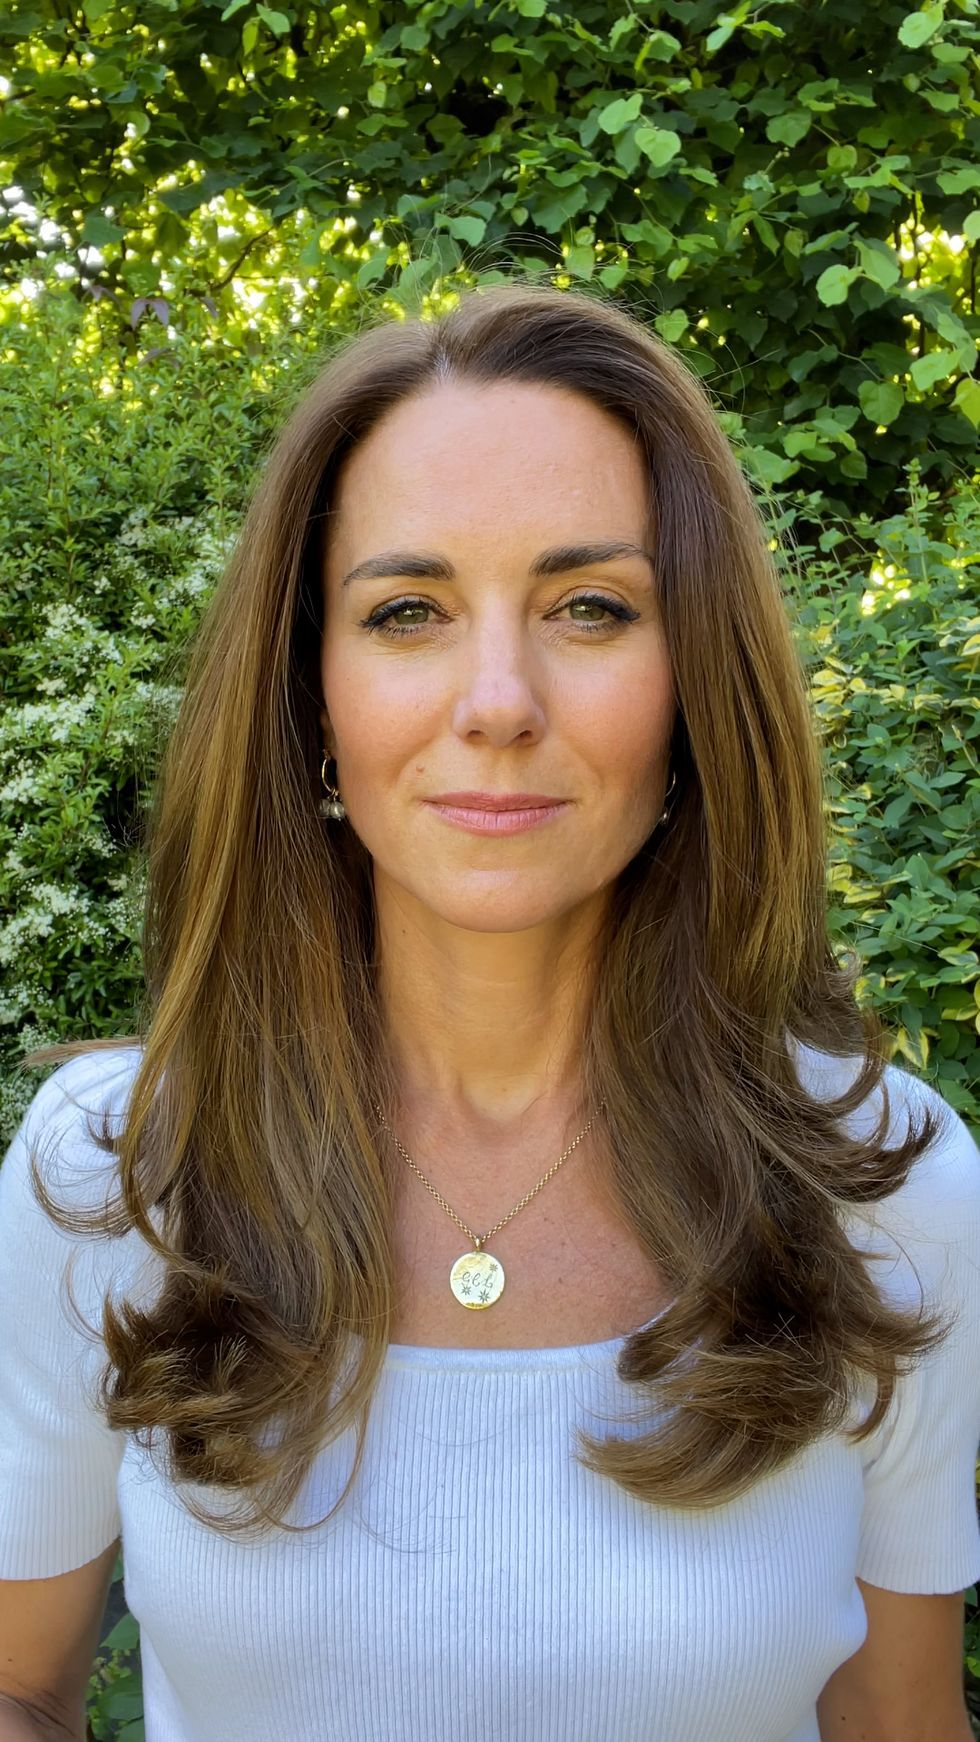 Duchess Kate's Biggest Announcement Yet? Launching Her Own Center for Early Childhood